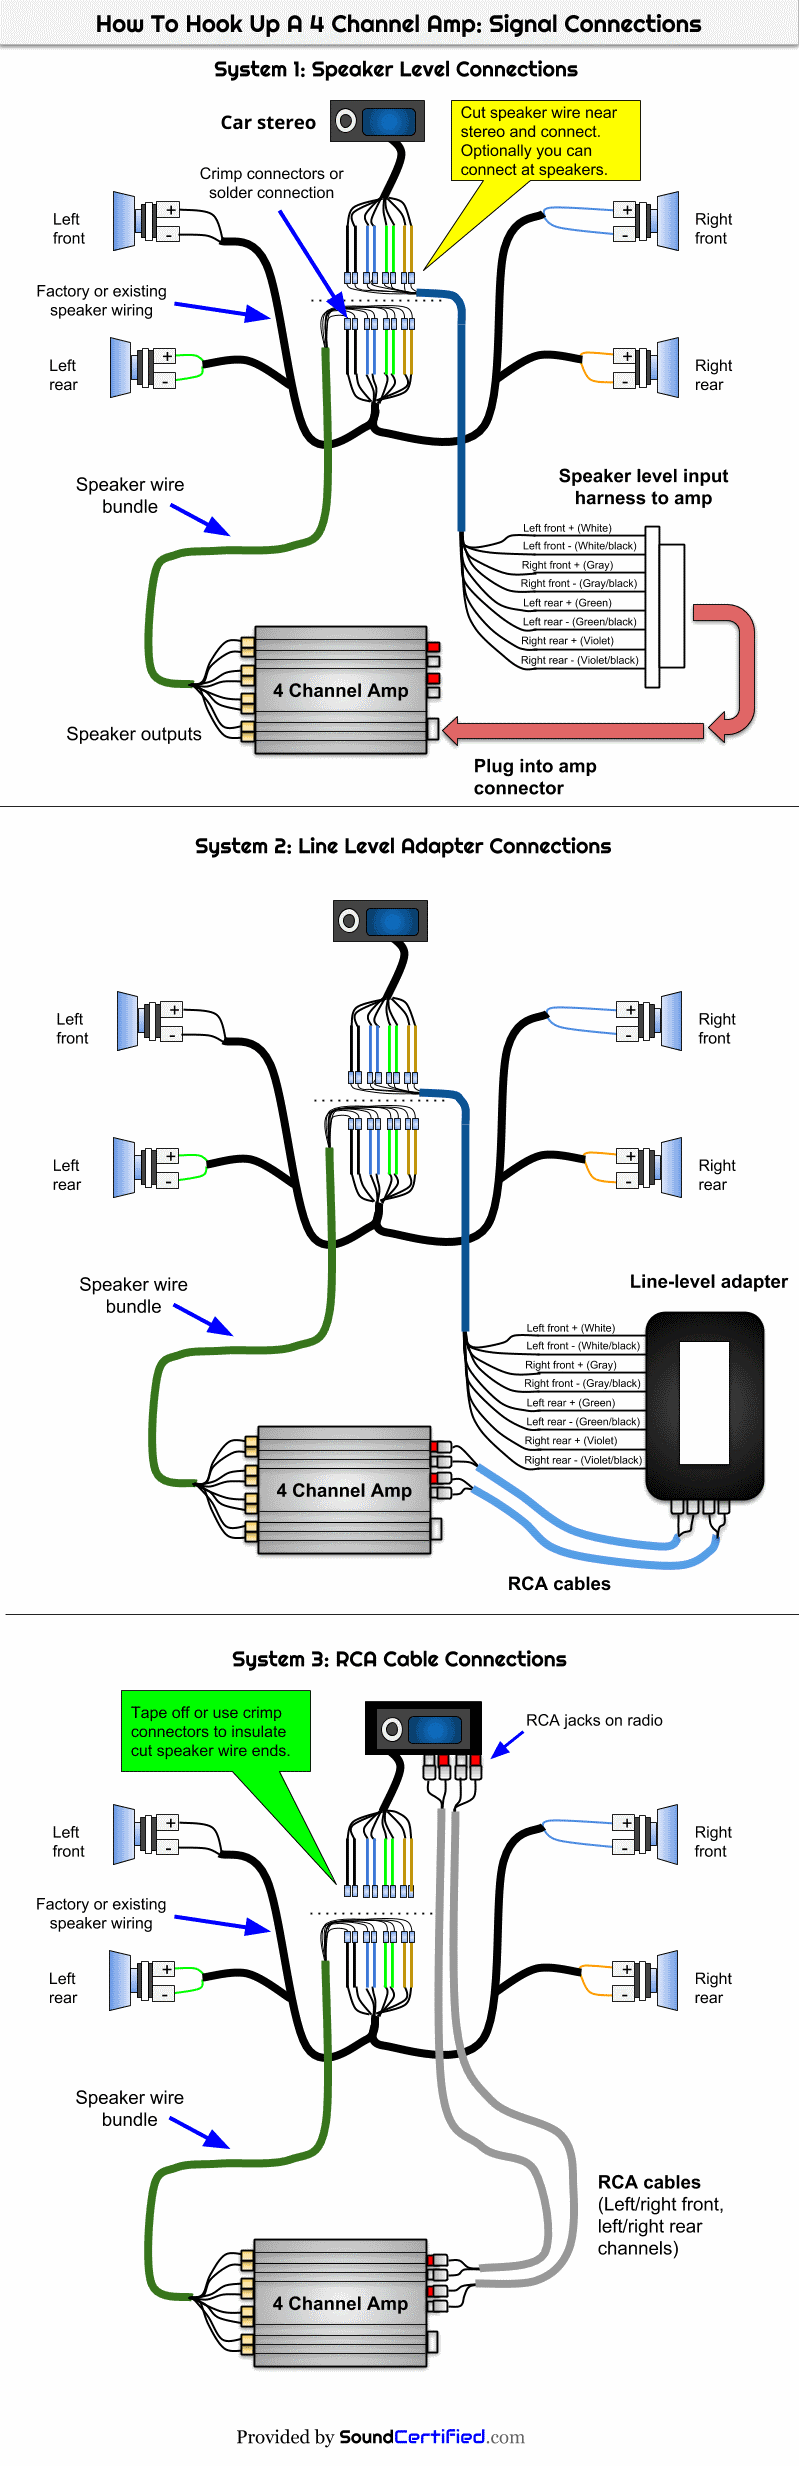 DIAGRAM] 5 Channel Wiring Diagram FULL Version HD Quality Wiring Diagram -  BENNINGTONFACEBOOK.BORGOCONTESSA.ITbenningtonfacebook.borgocontessa.it